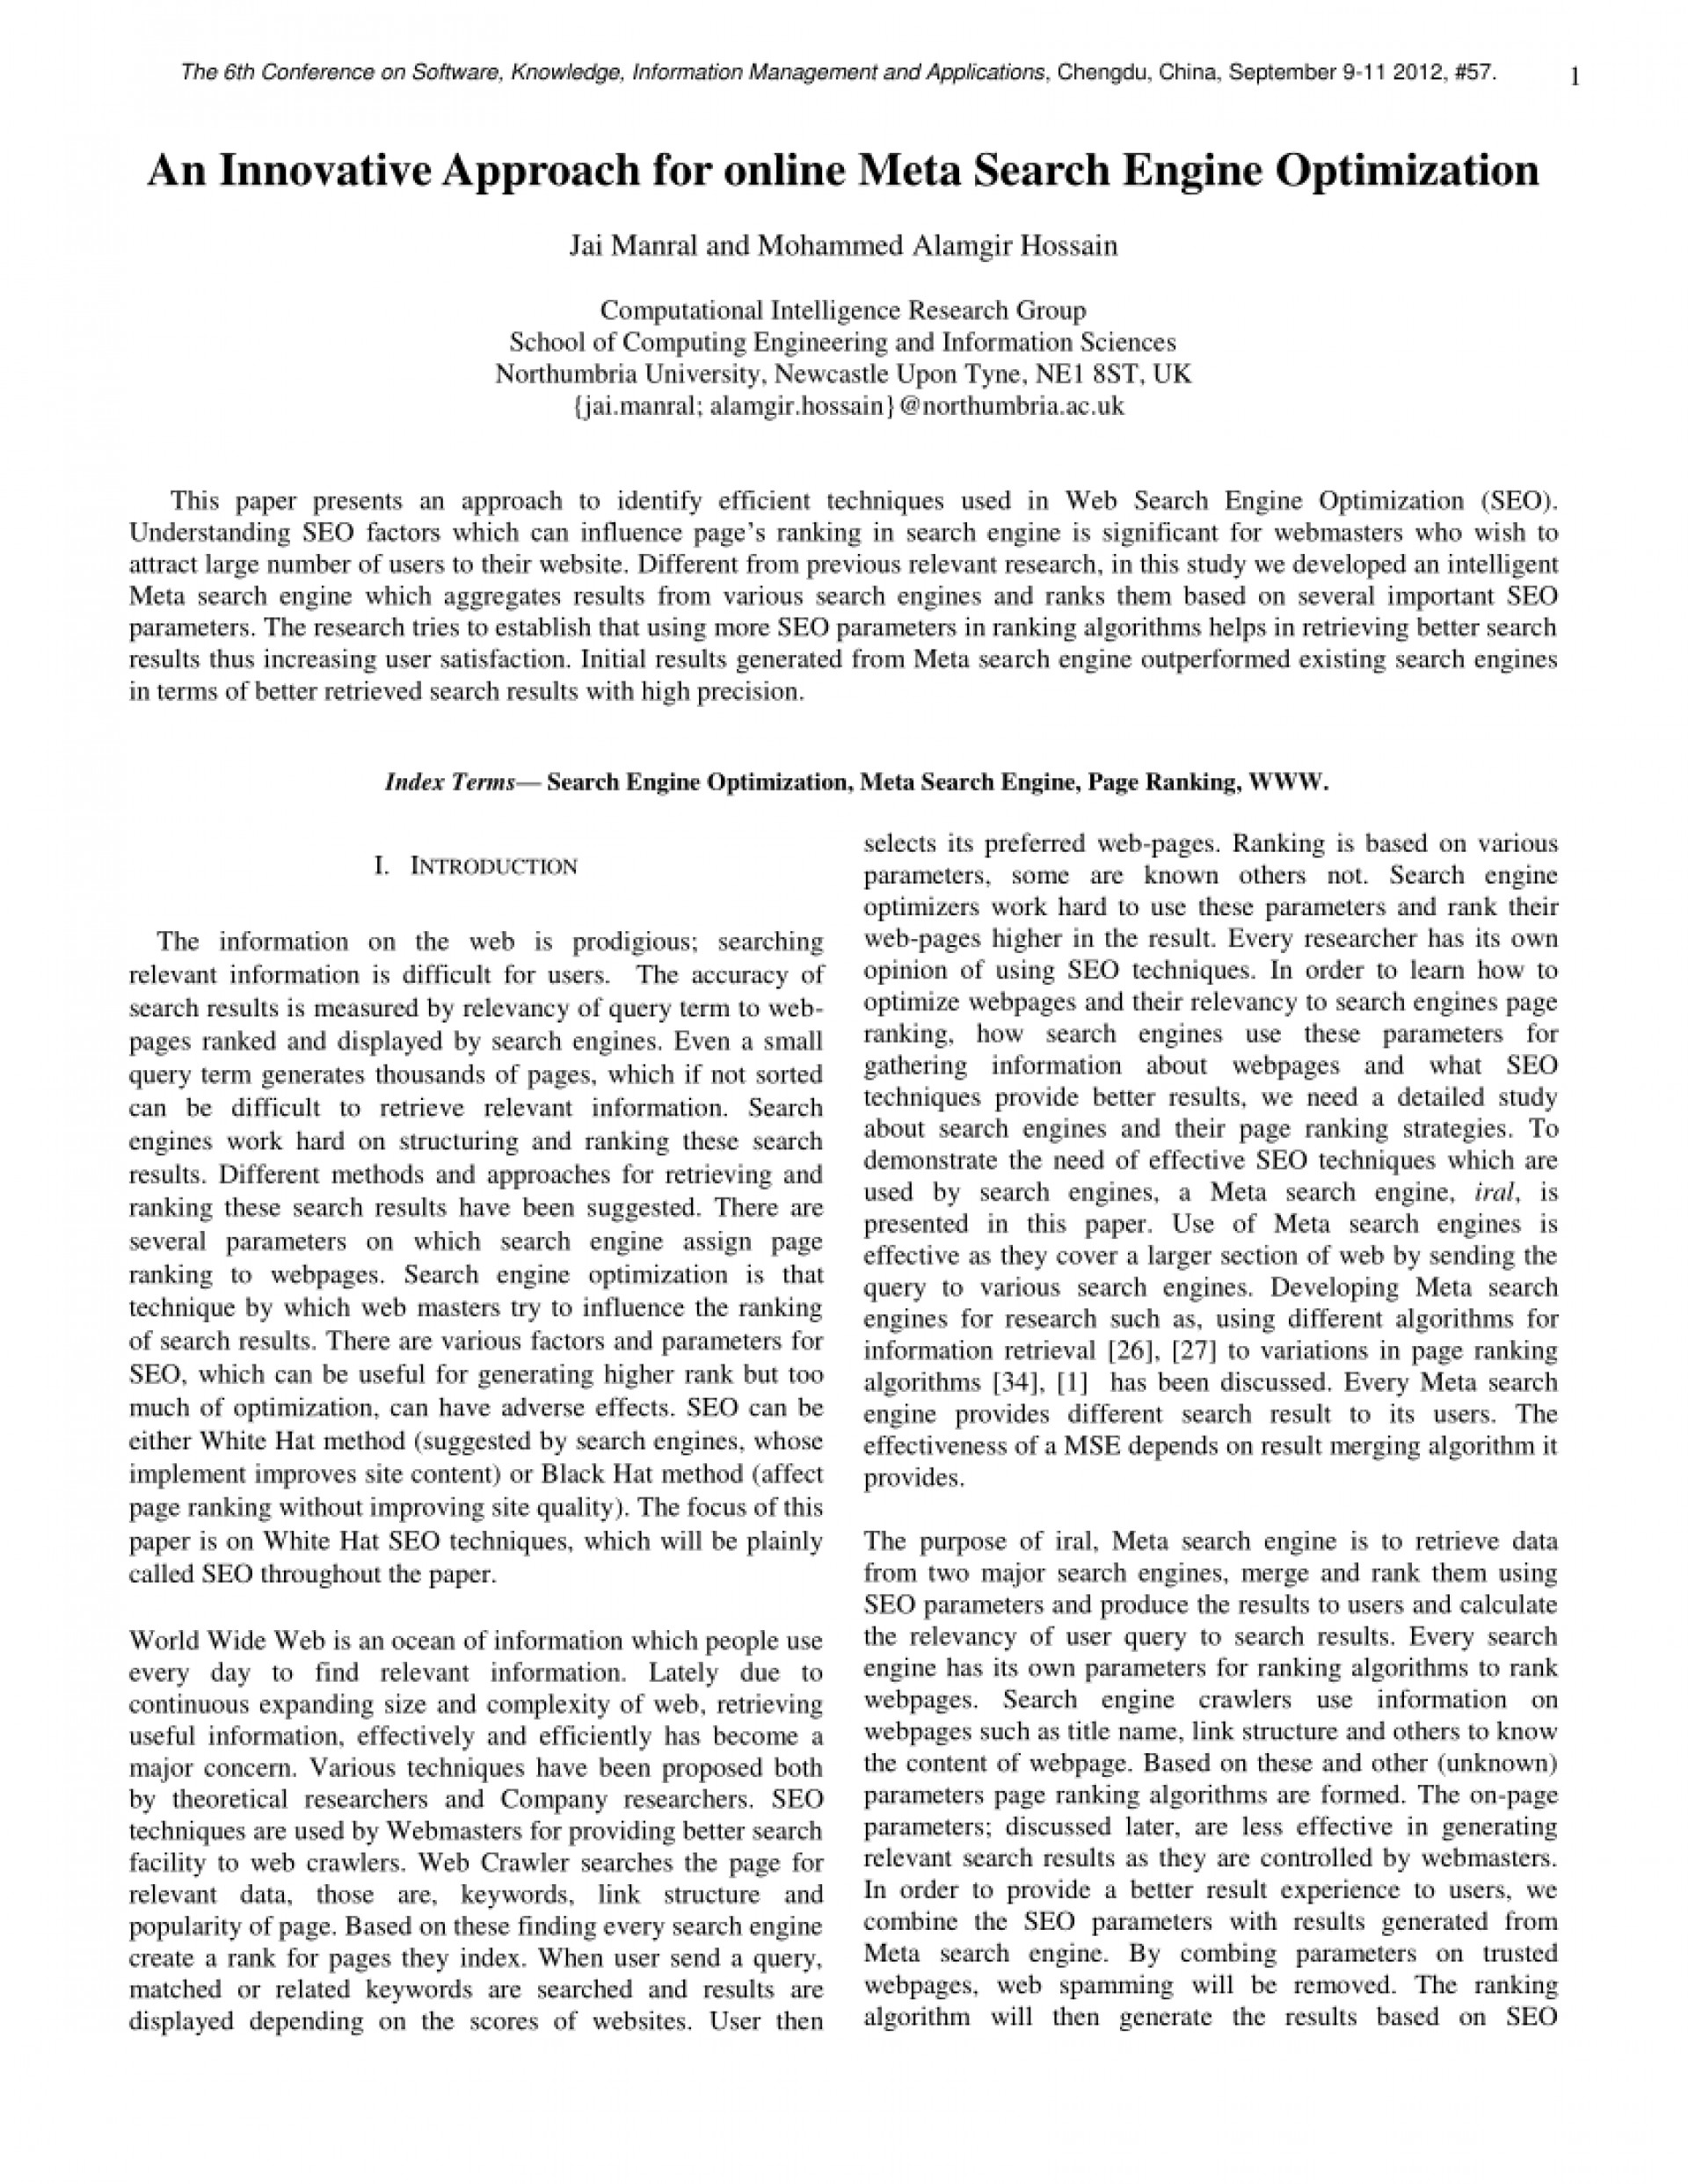 010 Meta Search Engine Research Paper Formidable 1920